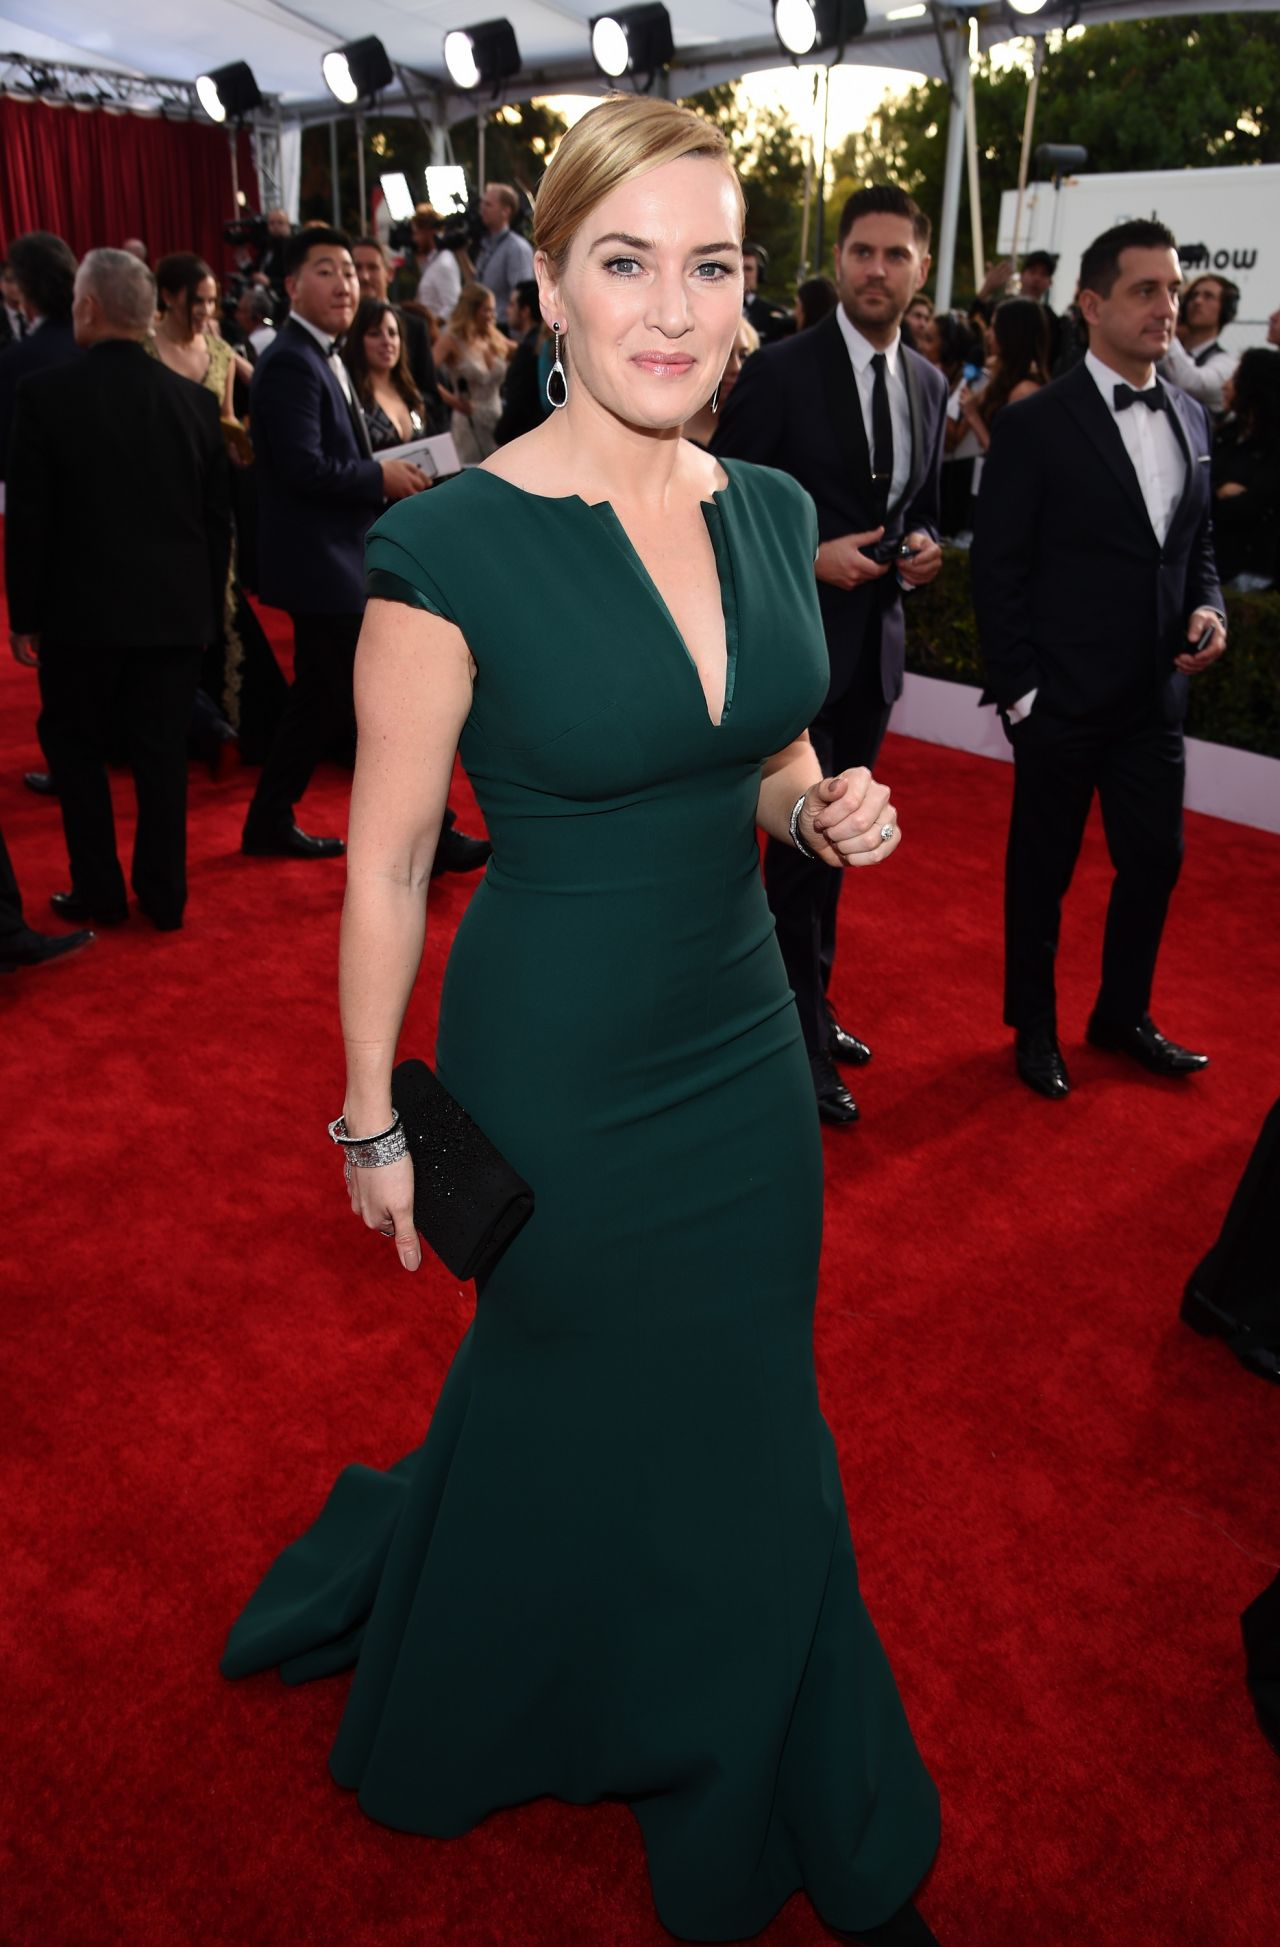 Kate Winslet  SAG Awards 2016 at Shrine Auditorium in Los Angeles